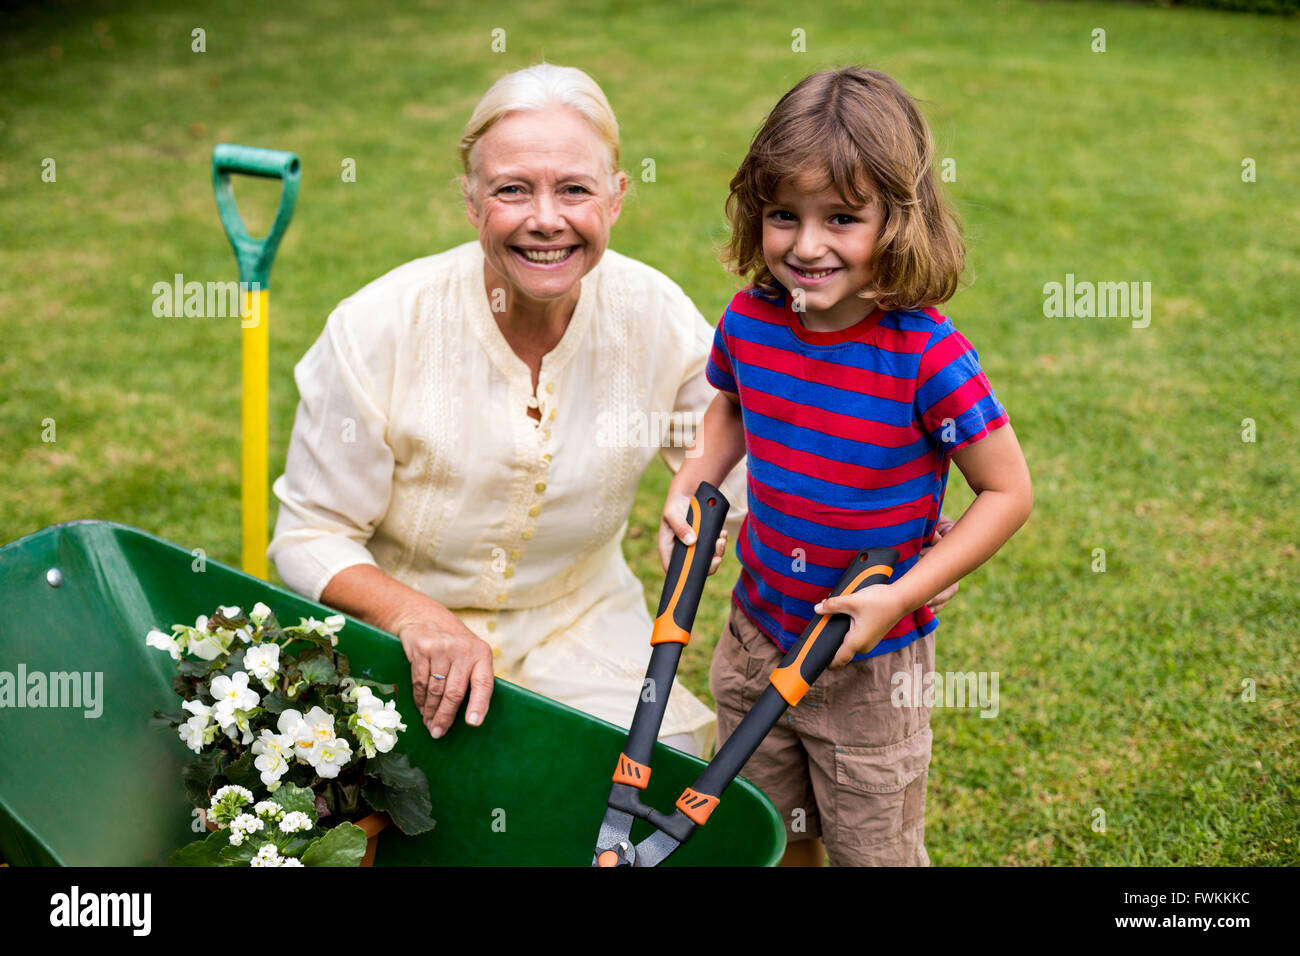 granny boy Boy with granny holding scissors over wheelbarrow at yard